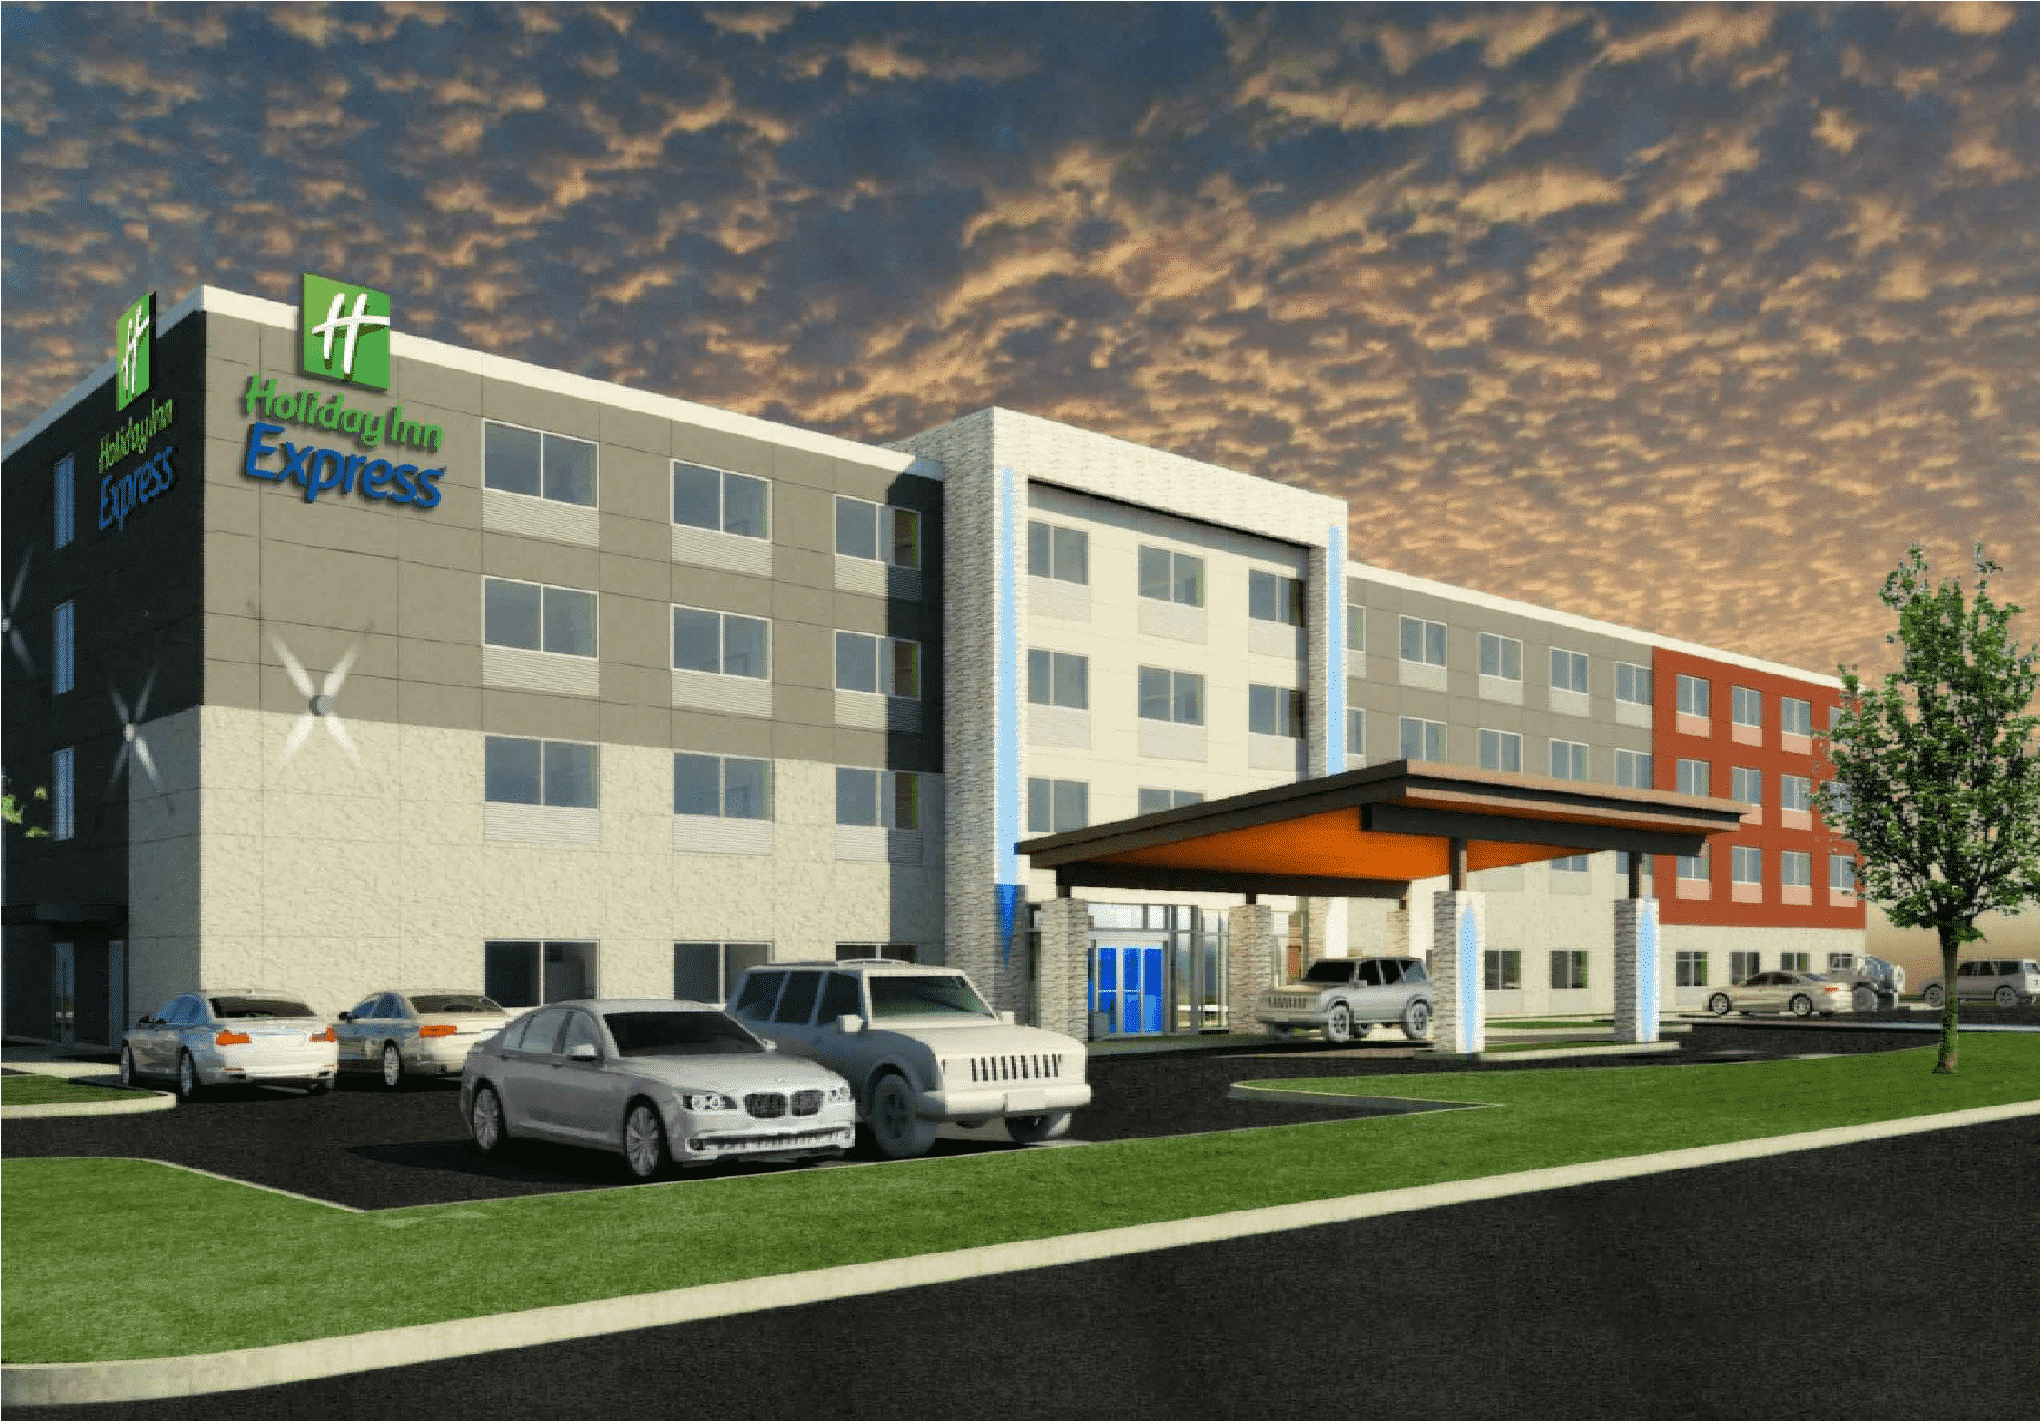 Holiday Inn Express Coming To Thomasville Al Construction Begins 4th Quarter 2017